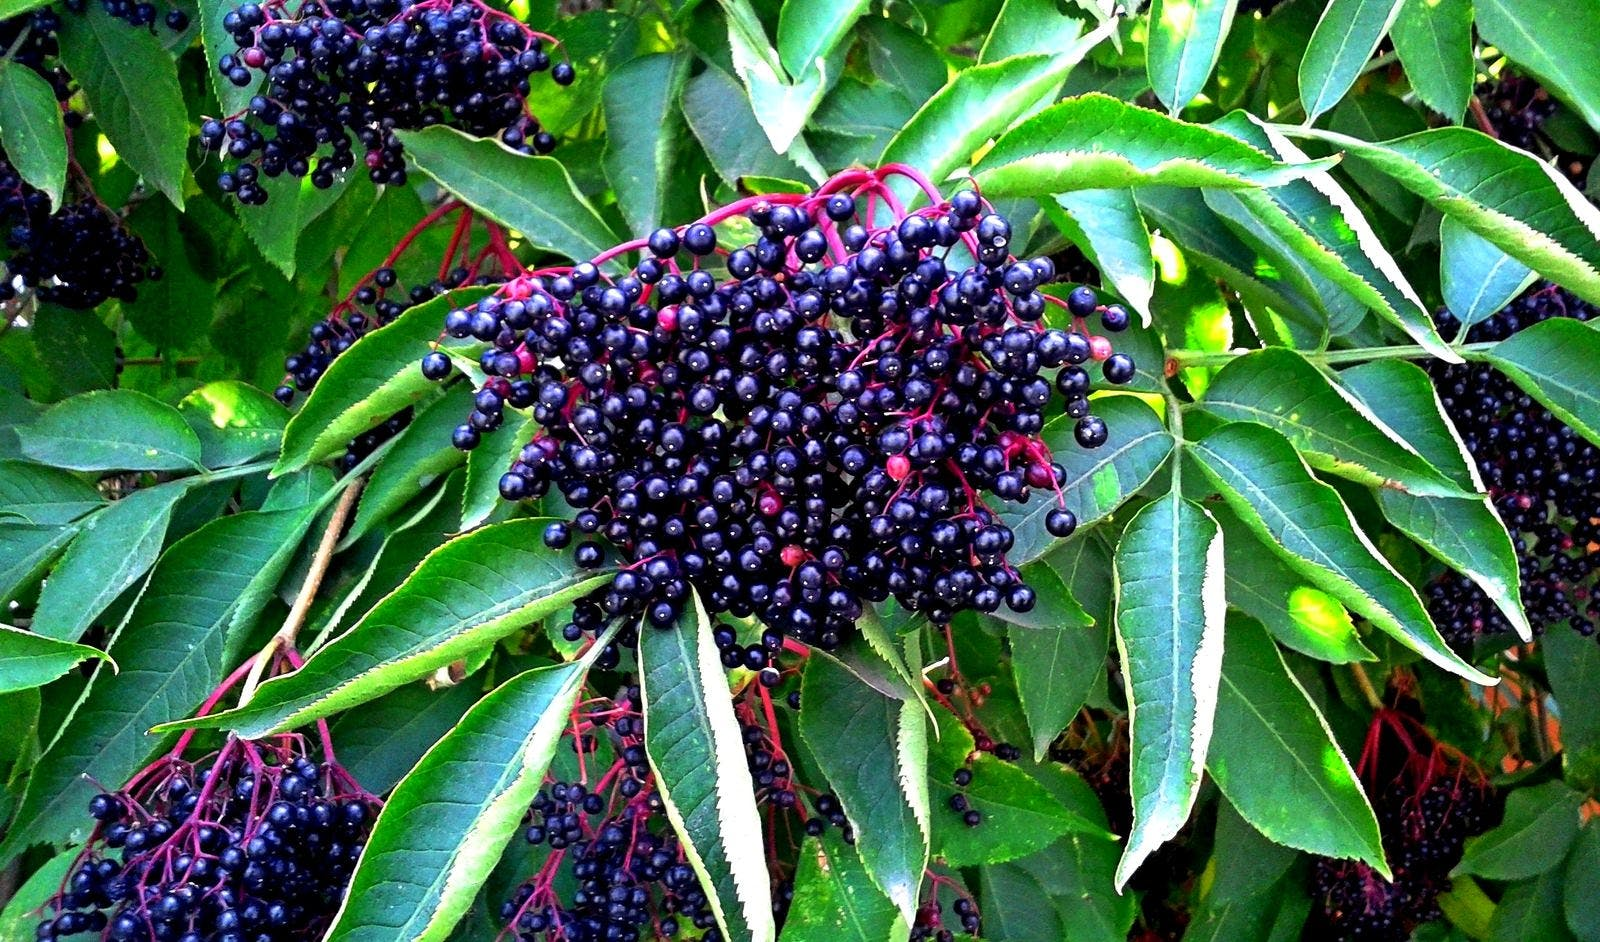 Ripe elderberries, also known as Sambucus berries, growing on a shrub; source of elderberry extract